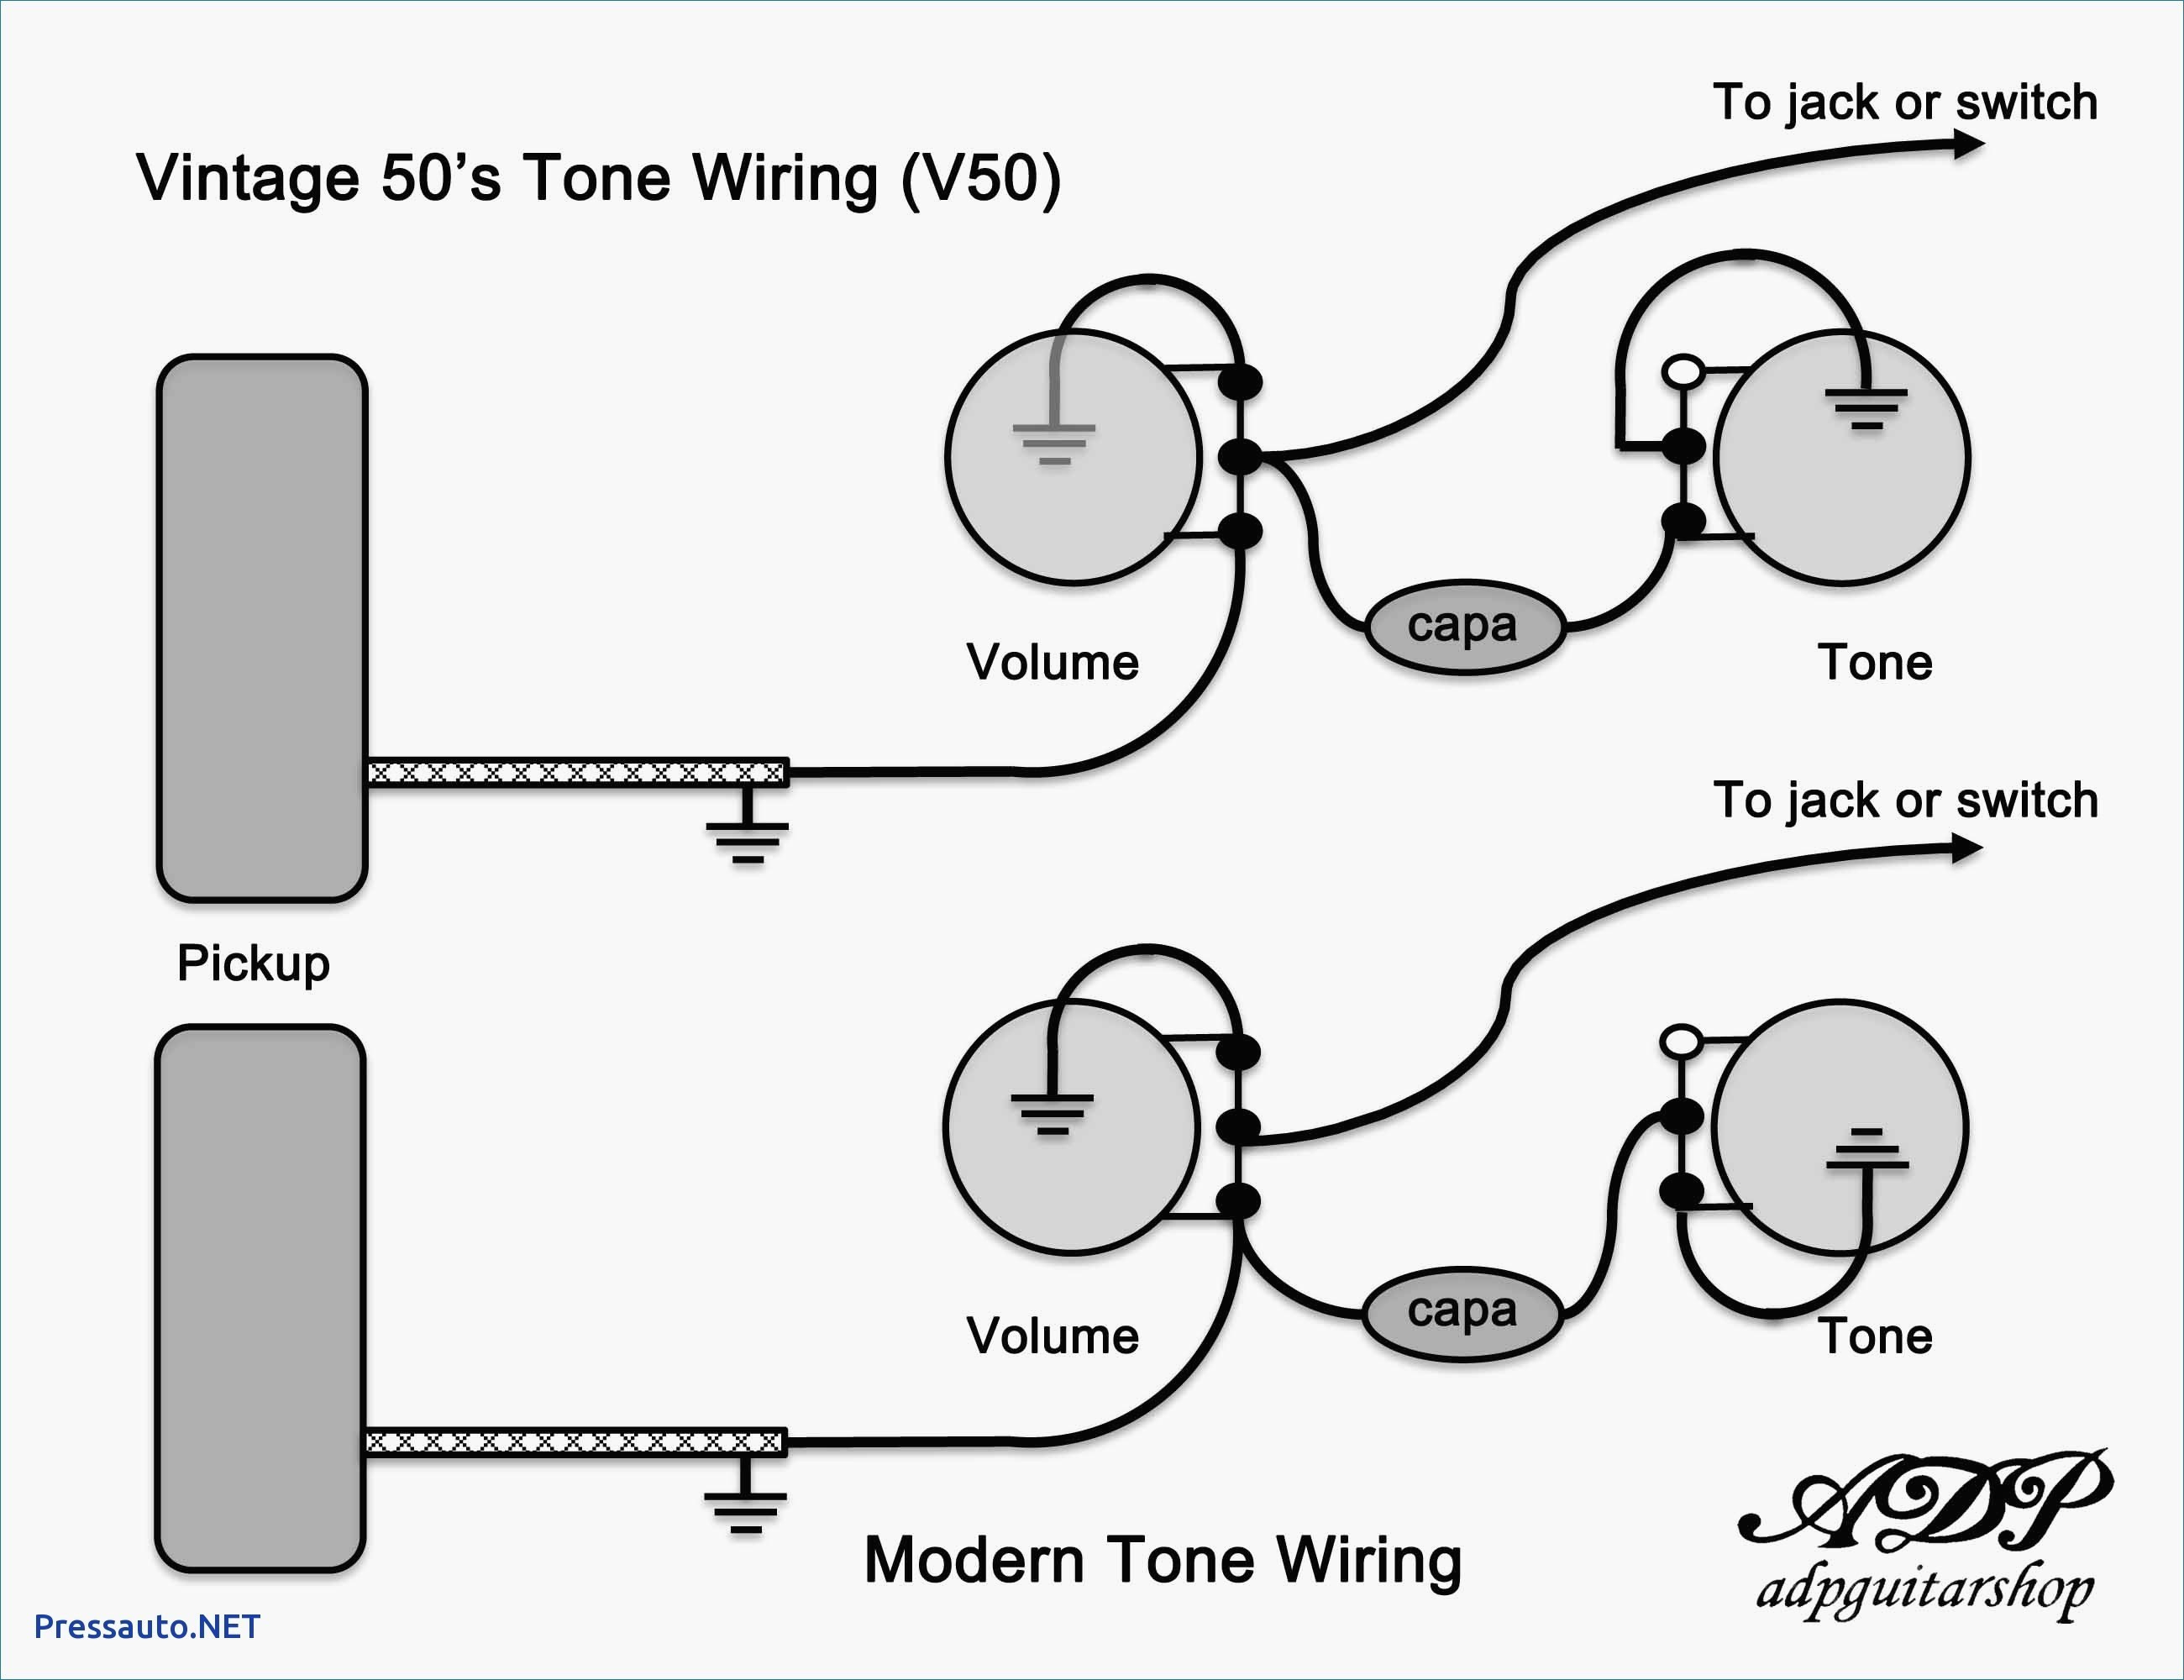 vintage les paul wiring diagram Download-Gibson Les Paul Special Wiring Diagram New Modern Wiring Diagram Les Paul Best Vintage Wiring Diagram 8-n